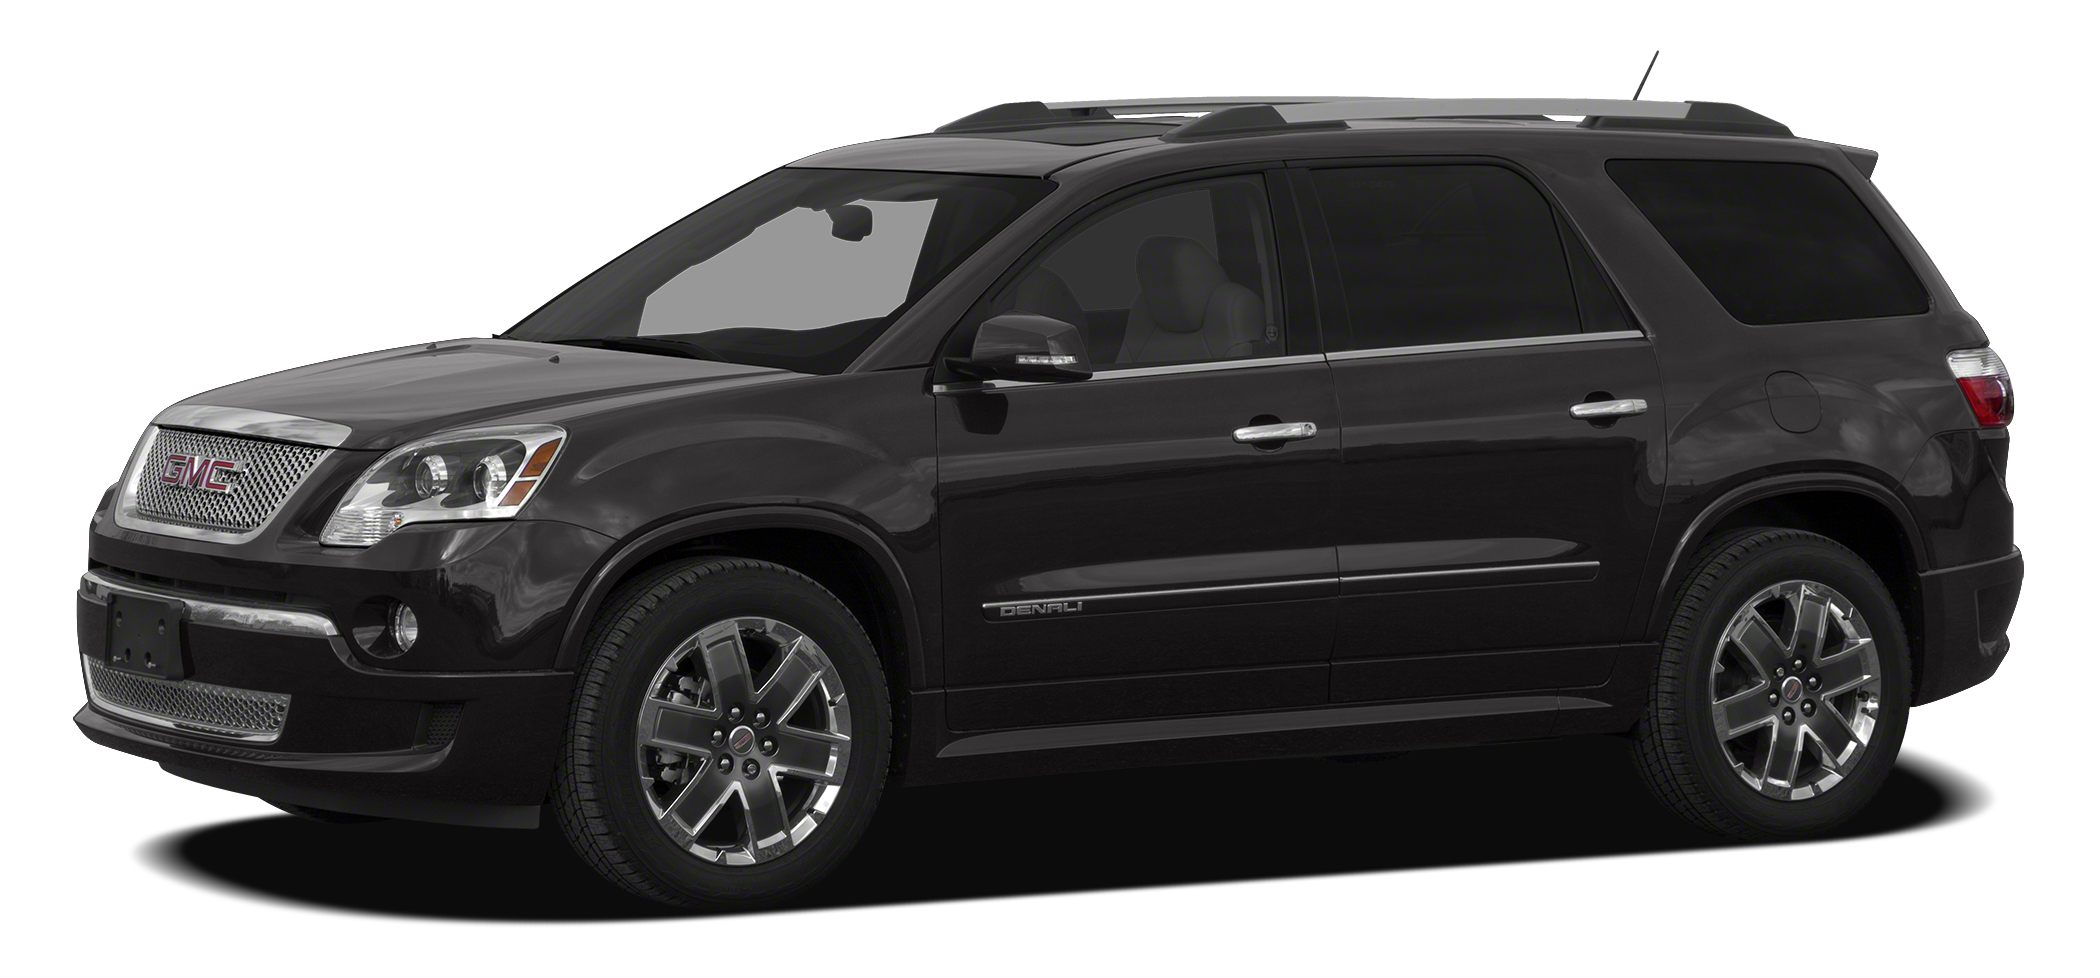 2012 GMC Acadia Denali ITS OUR 50TH ANNIVERSARY HERE AT MARTYS AND TO CELEBRATE WERE OFFERING TH